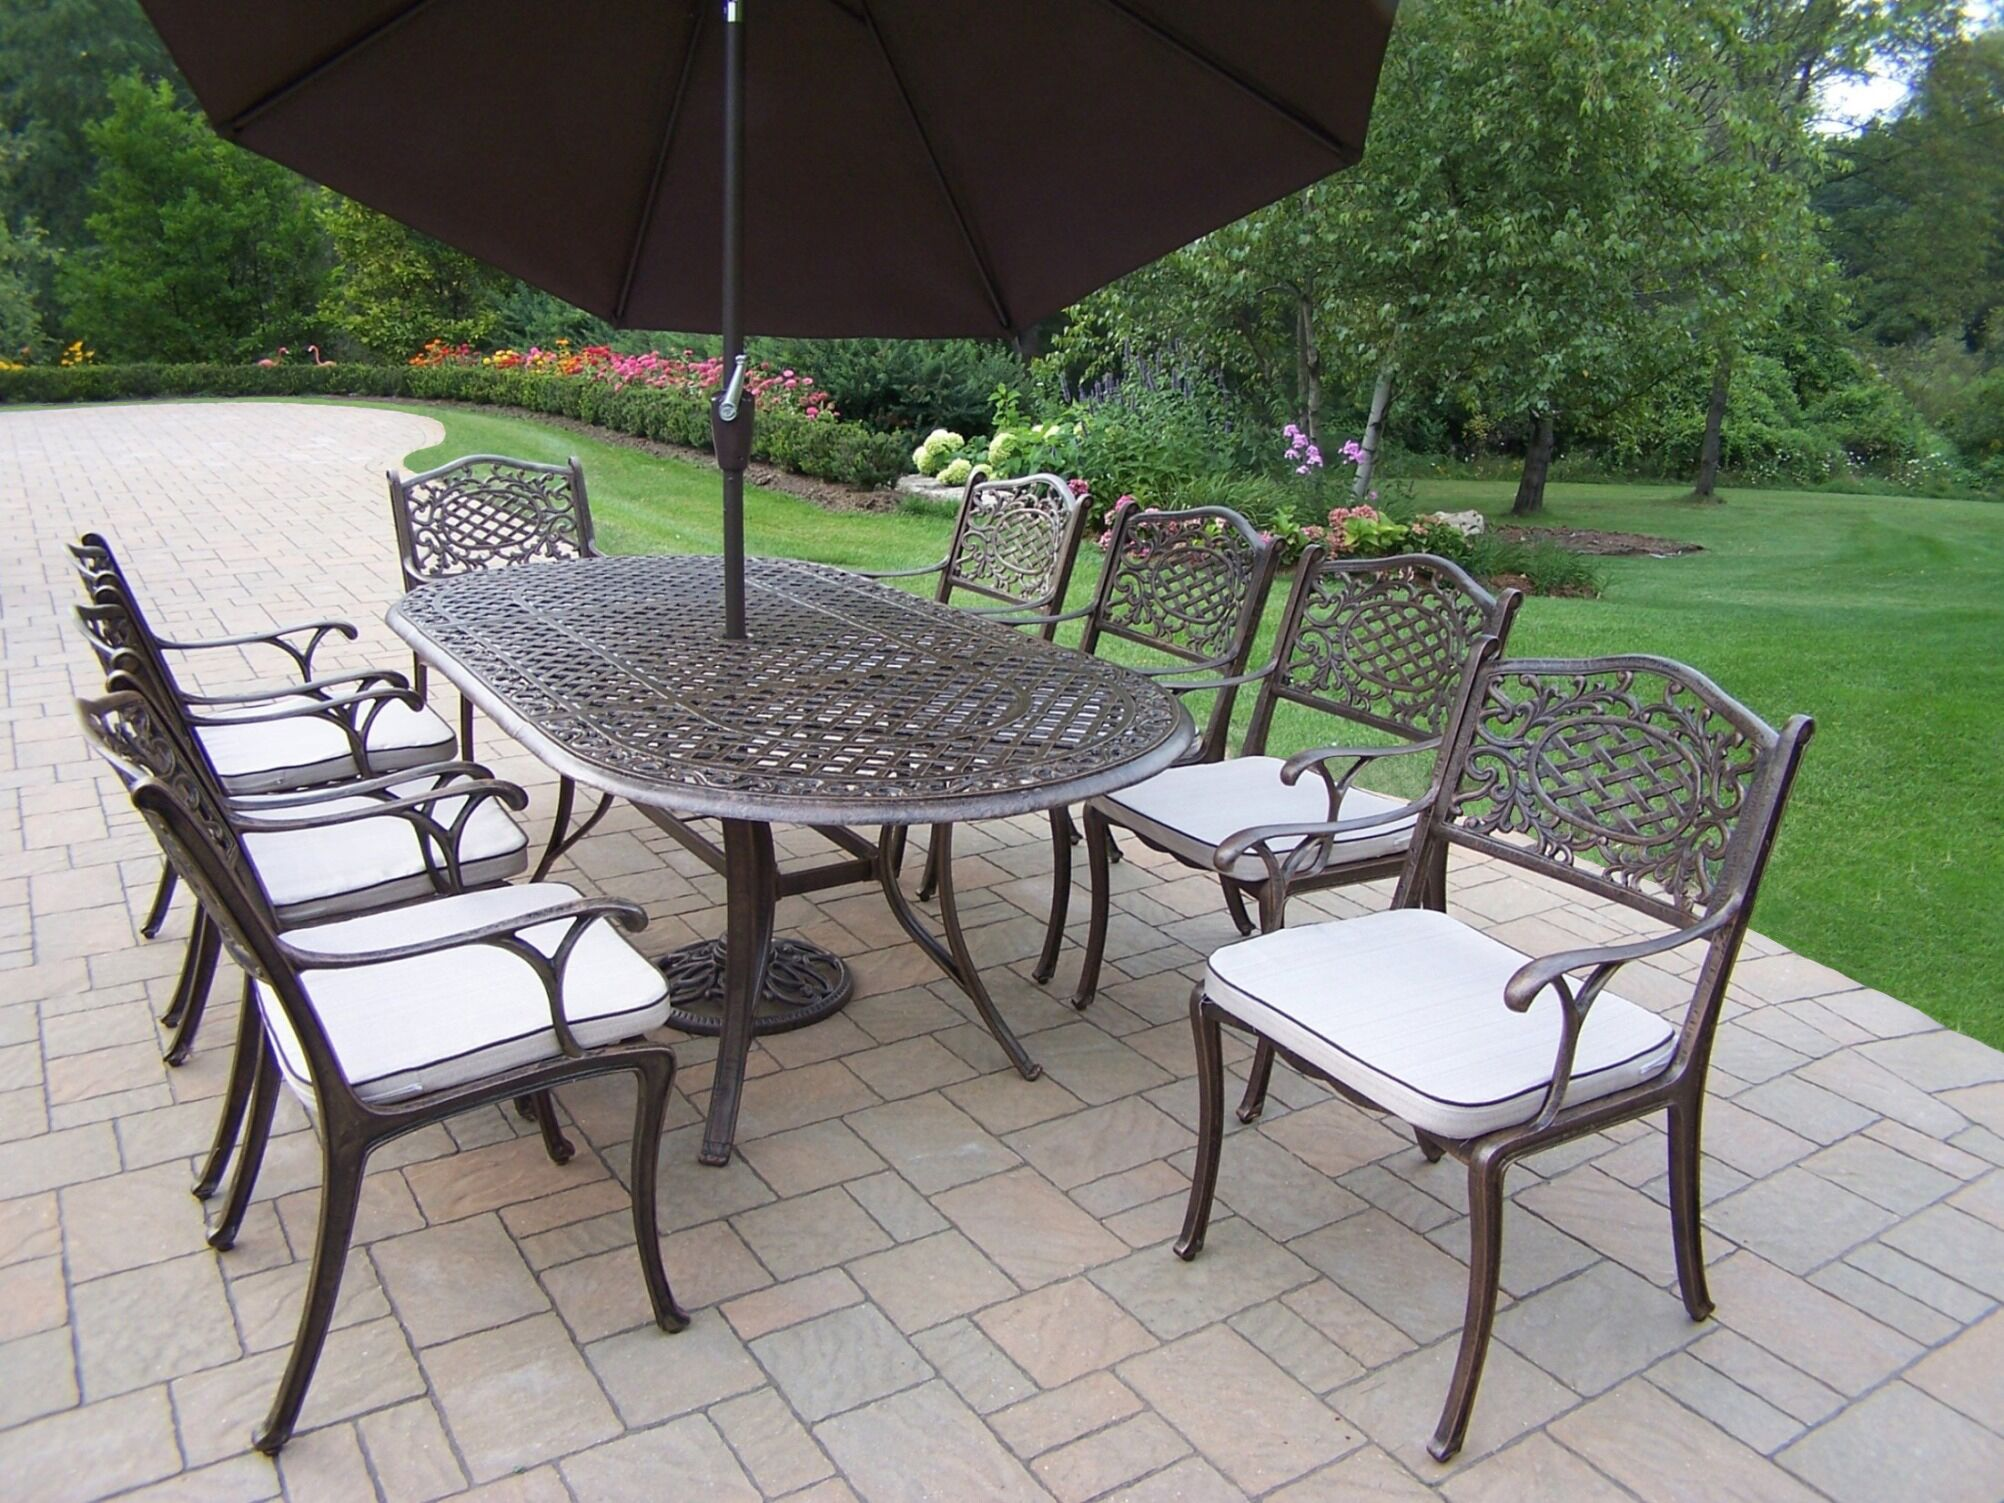 Mississippi Dining Set with Cushions and Umbrella Umbrella Color: Brown